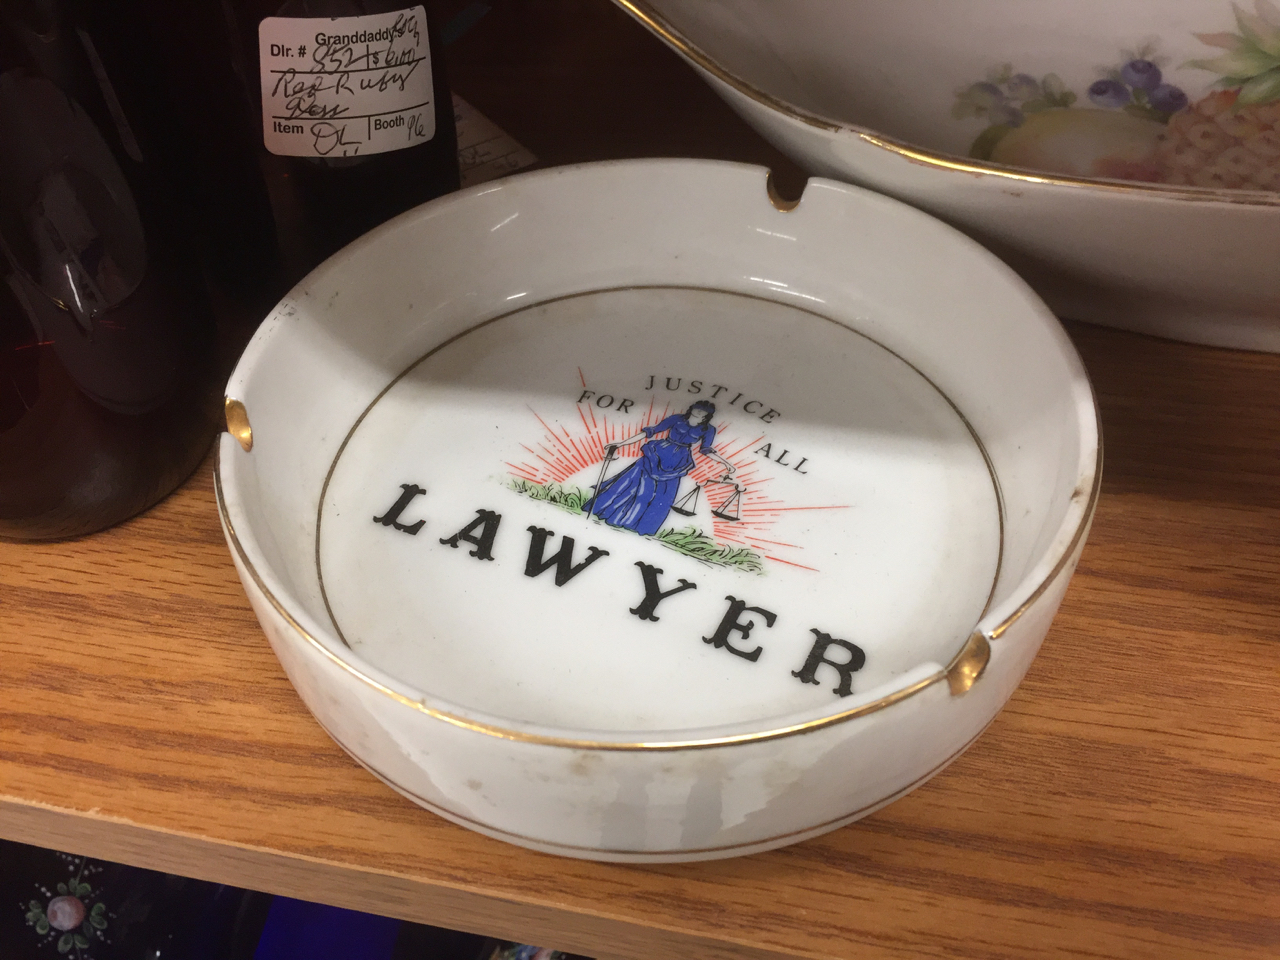 rub your butt on a lawyer